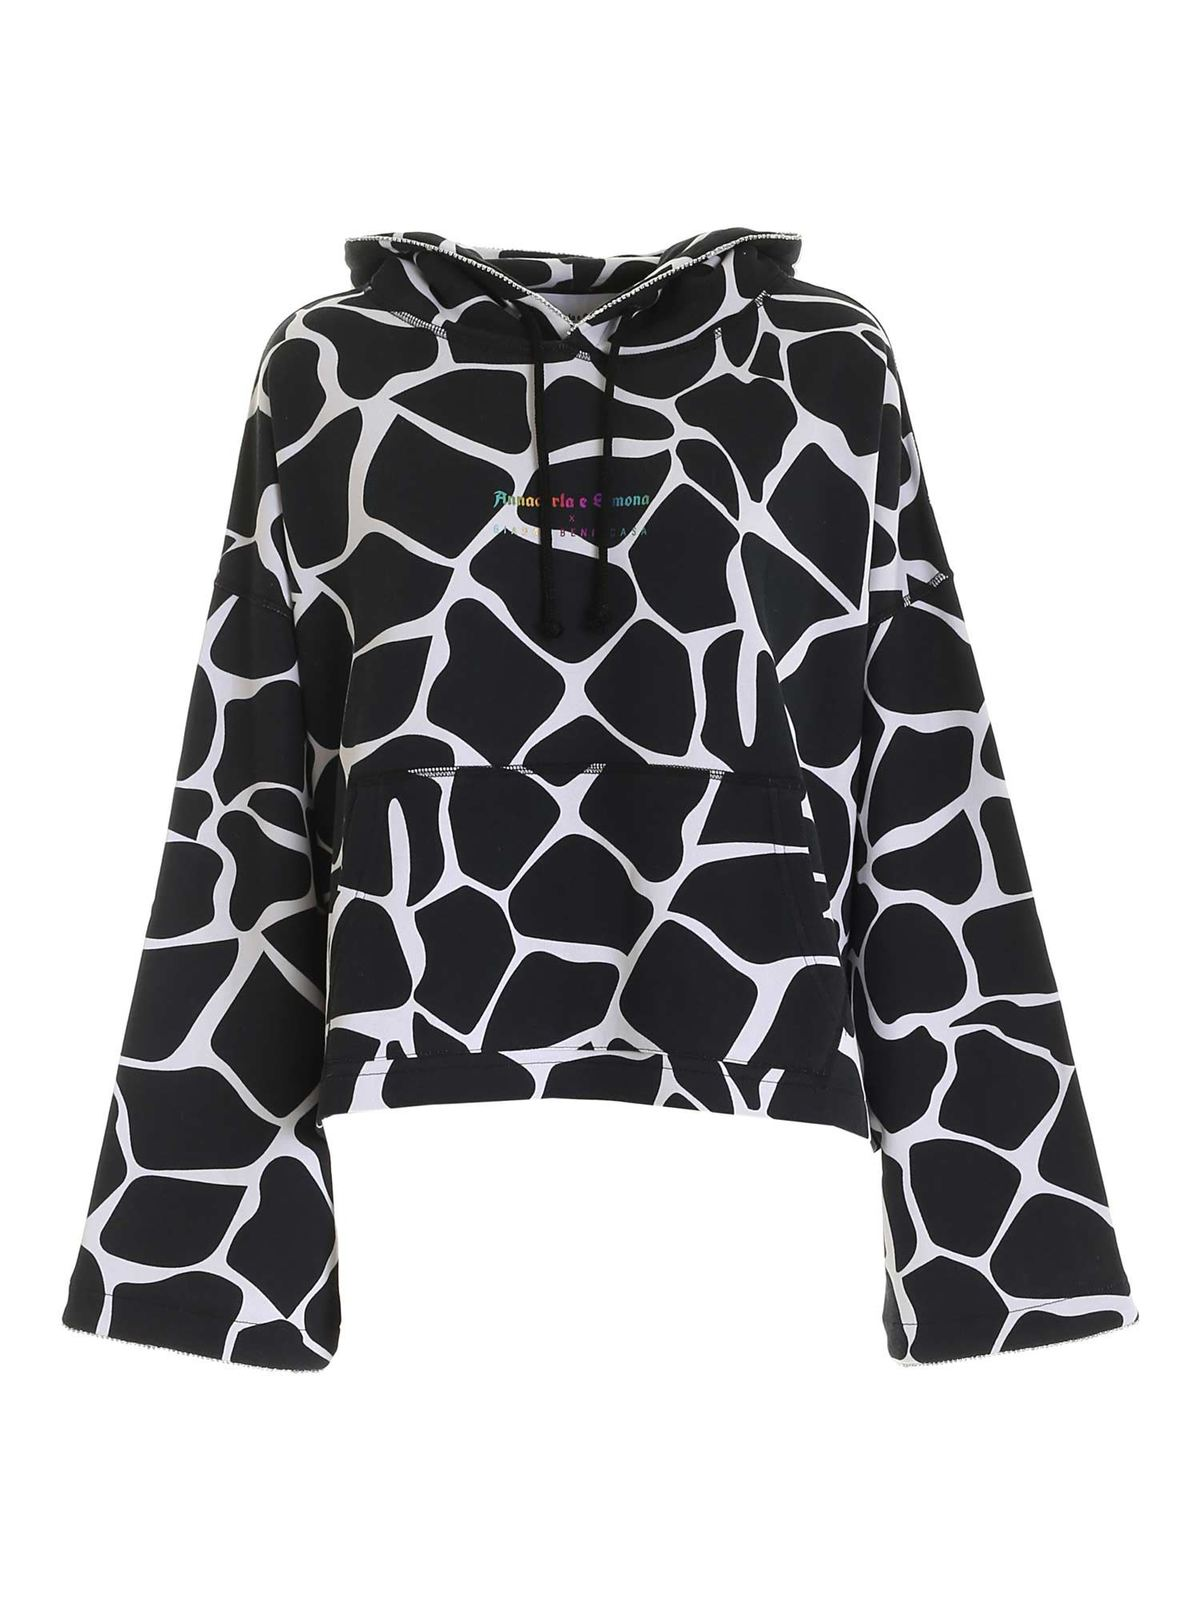 Giada Benincasa HOODIE IN BLACK AND WHITE